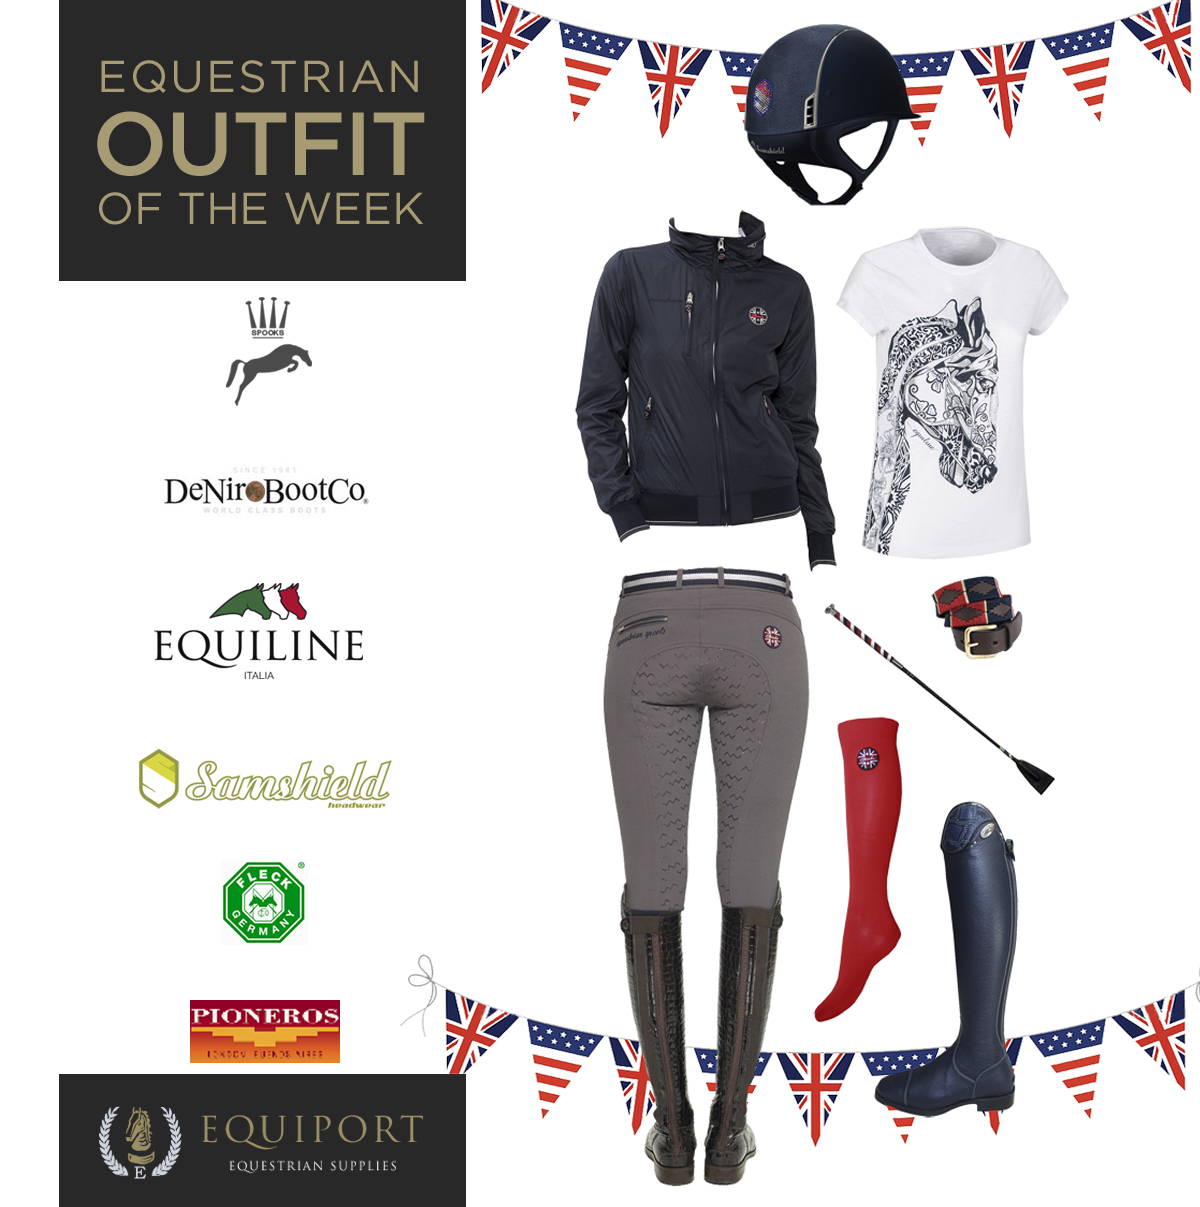 Equestrian Outfit of the Week 16 May 2018 - Royal Wedding Edition!